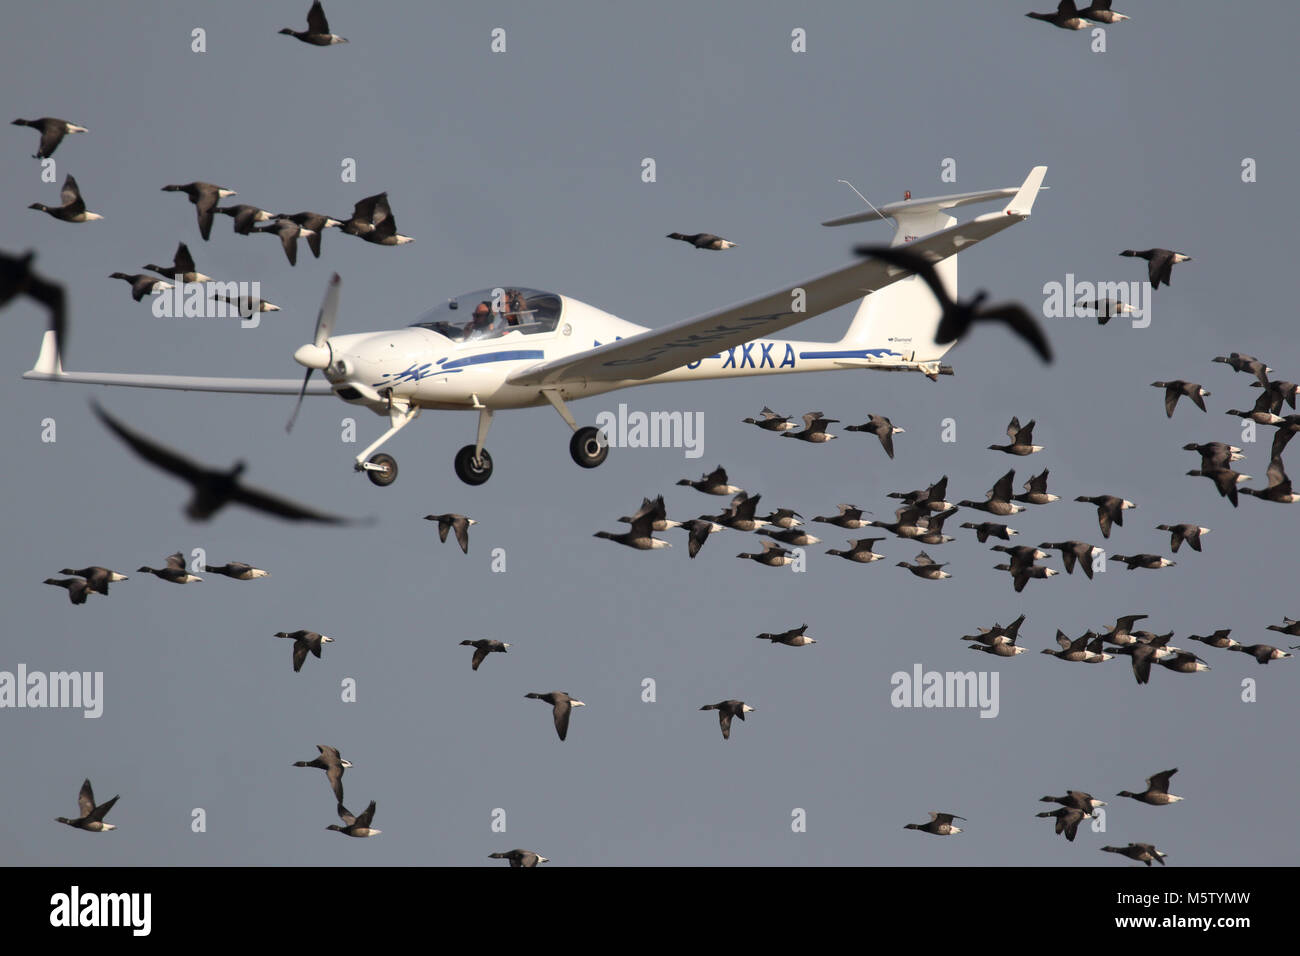 A light aircraft narrowly avoids collision with a flock of brent geese (Branta bernicla) over the Swale, Kent, England. - Stock Image